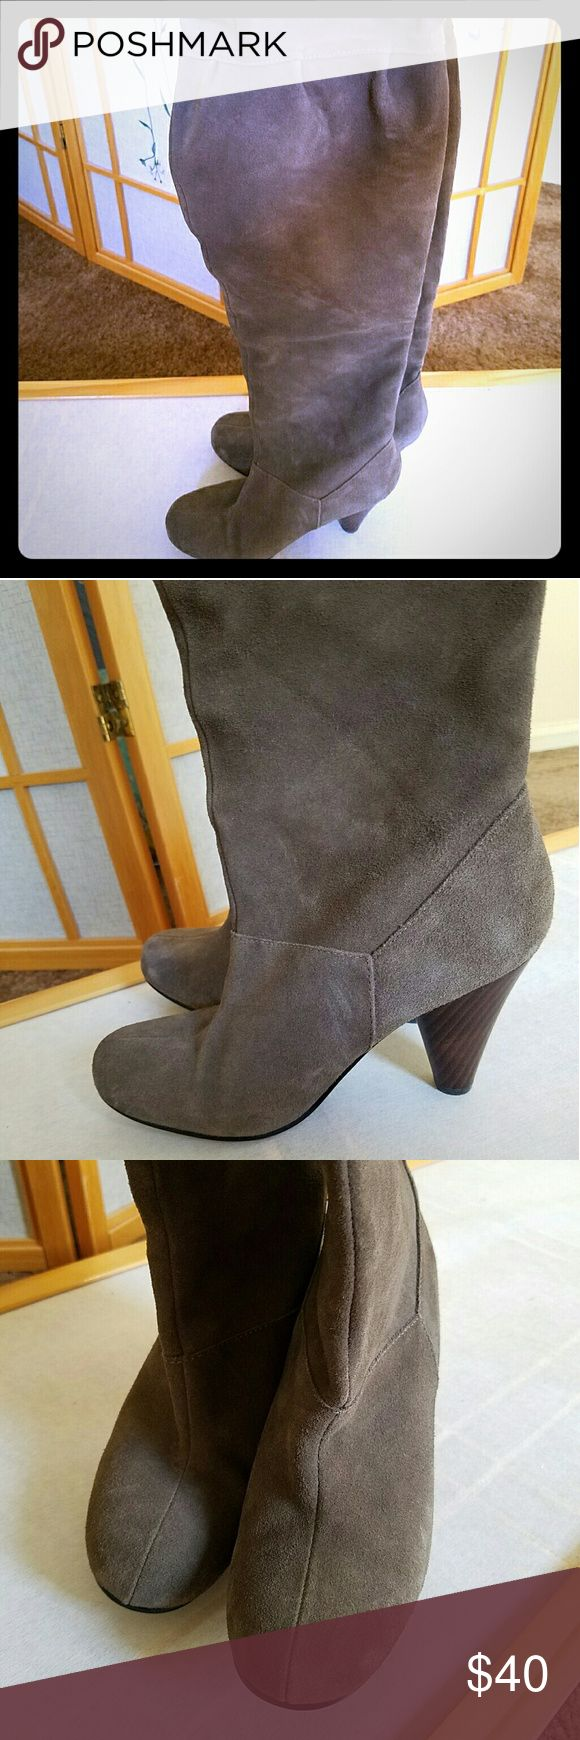 """Gorgeous """"Restricted"""" suede over the knee boots! Beautifully crafted, gray suede, over the knee boots. Notice the stitching detail and perfect wood, not a fake plastic heel! Timeless, stylish almond shaped toe, boot can be folded over or slouched for extra flare! These have been worn with love and care, with many compliments. Heel height is comfy at 3 inches. Restricted Shoes Over the Knee Boots"""